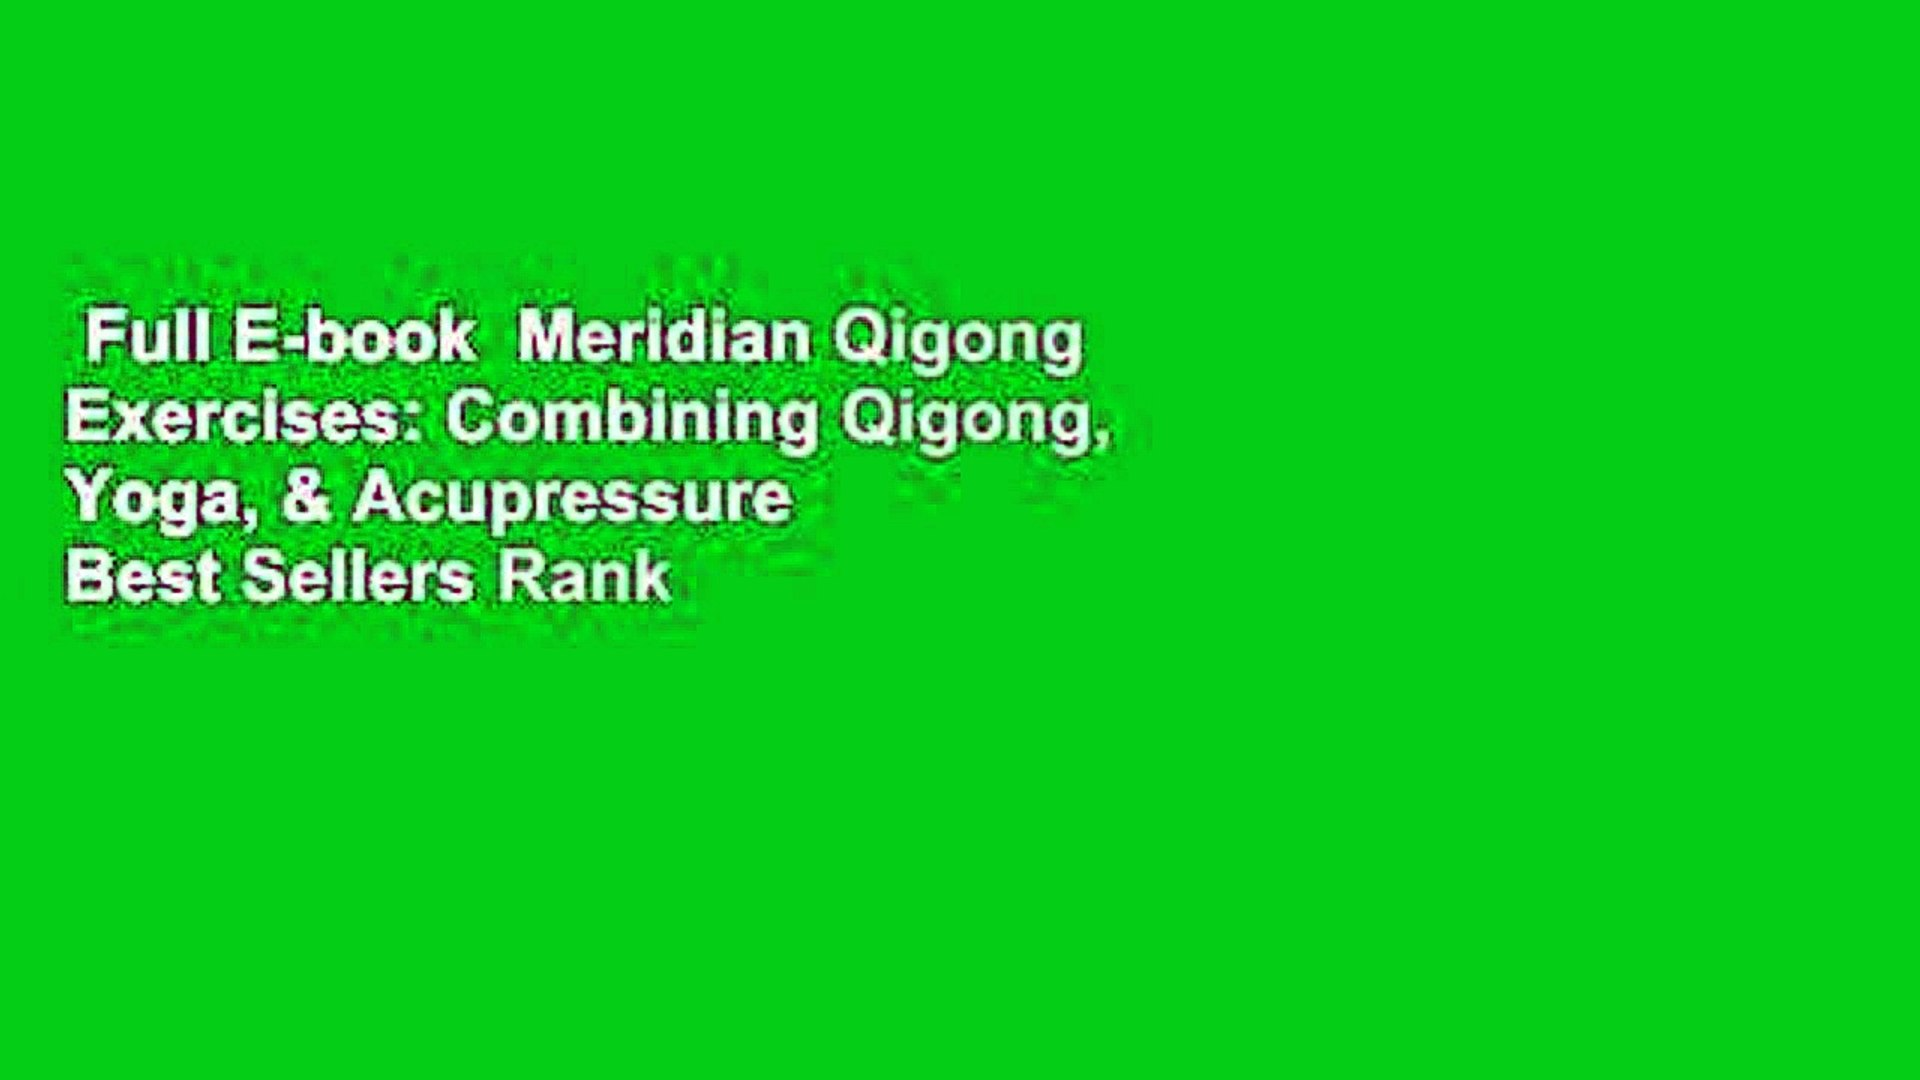 Full E-book Meridian Qigong Exercises: Combining Qigong, Yoga, &  Acupressure Best Sellers Rank